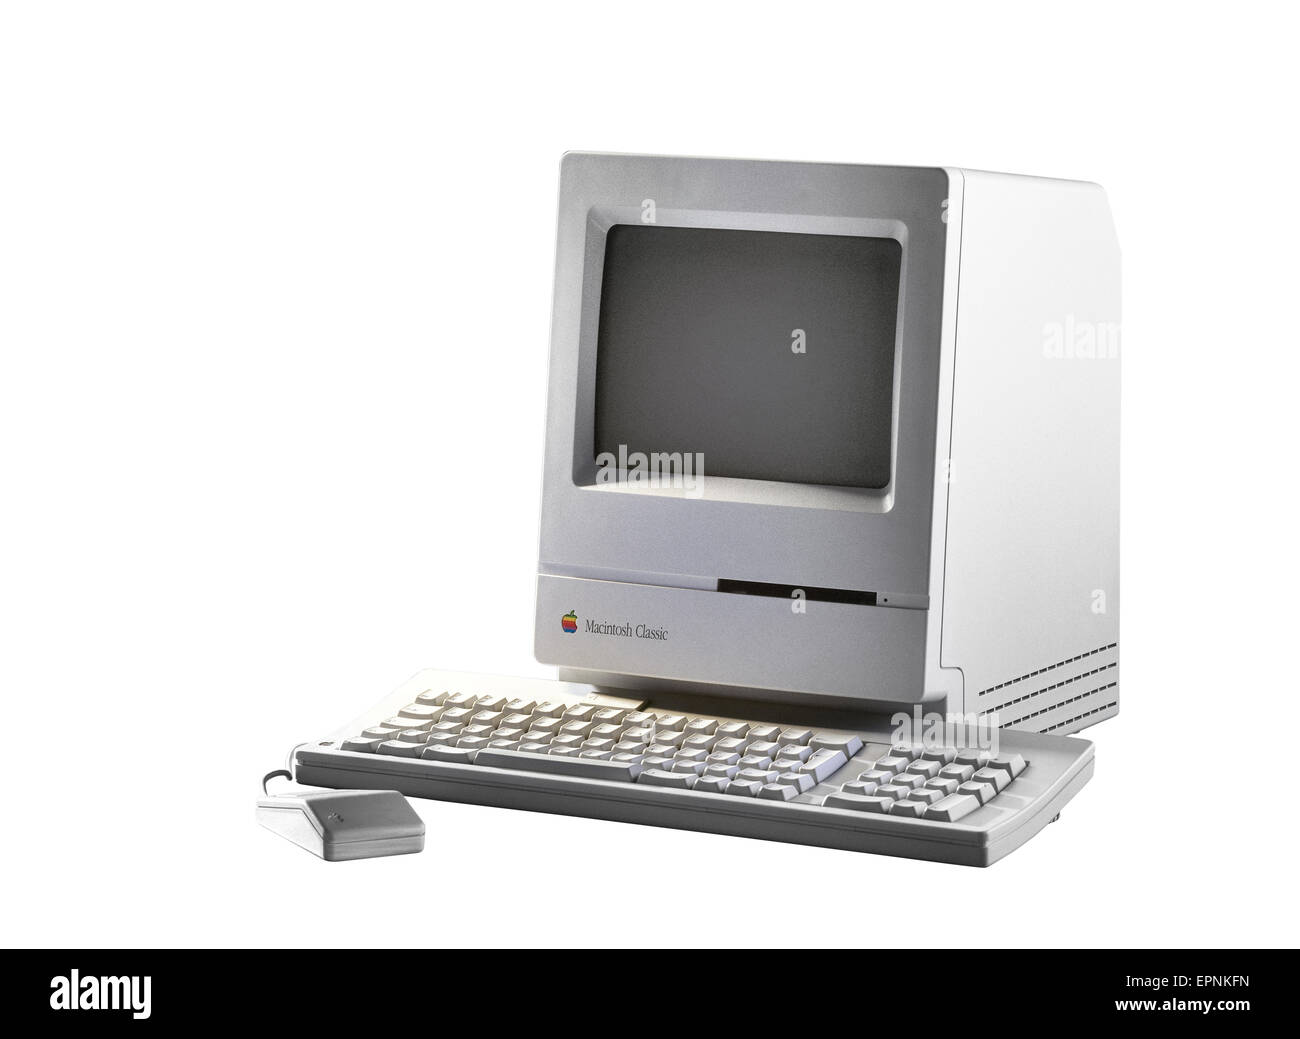 old fashioned computer and